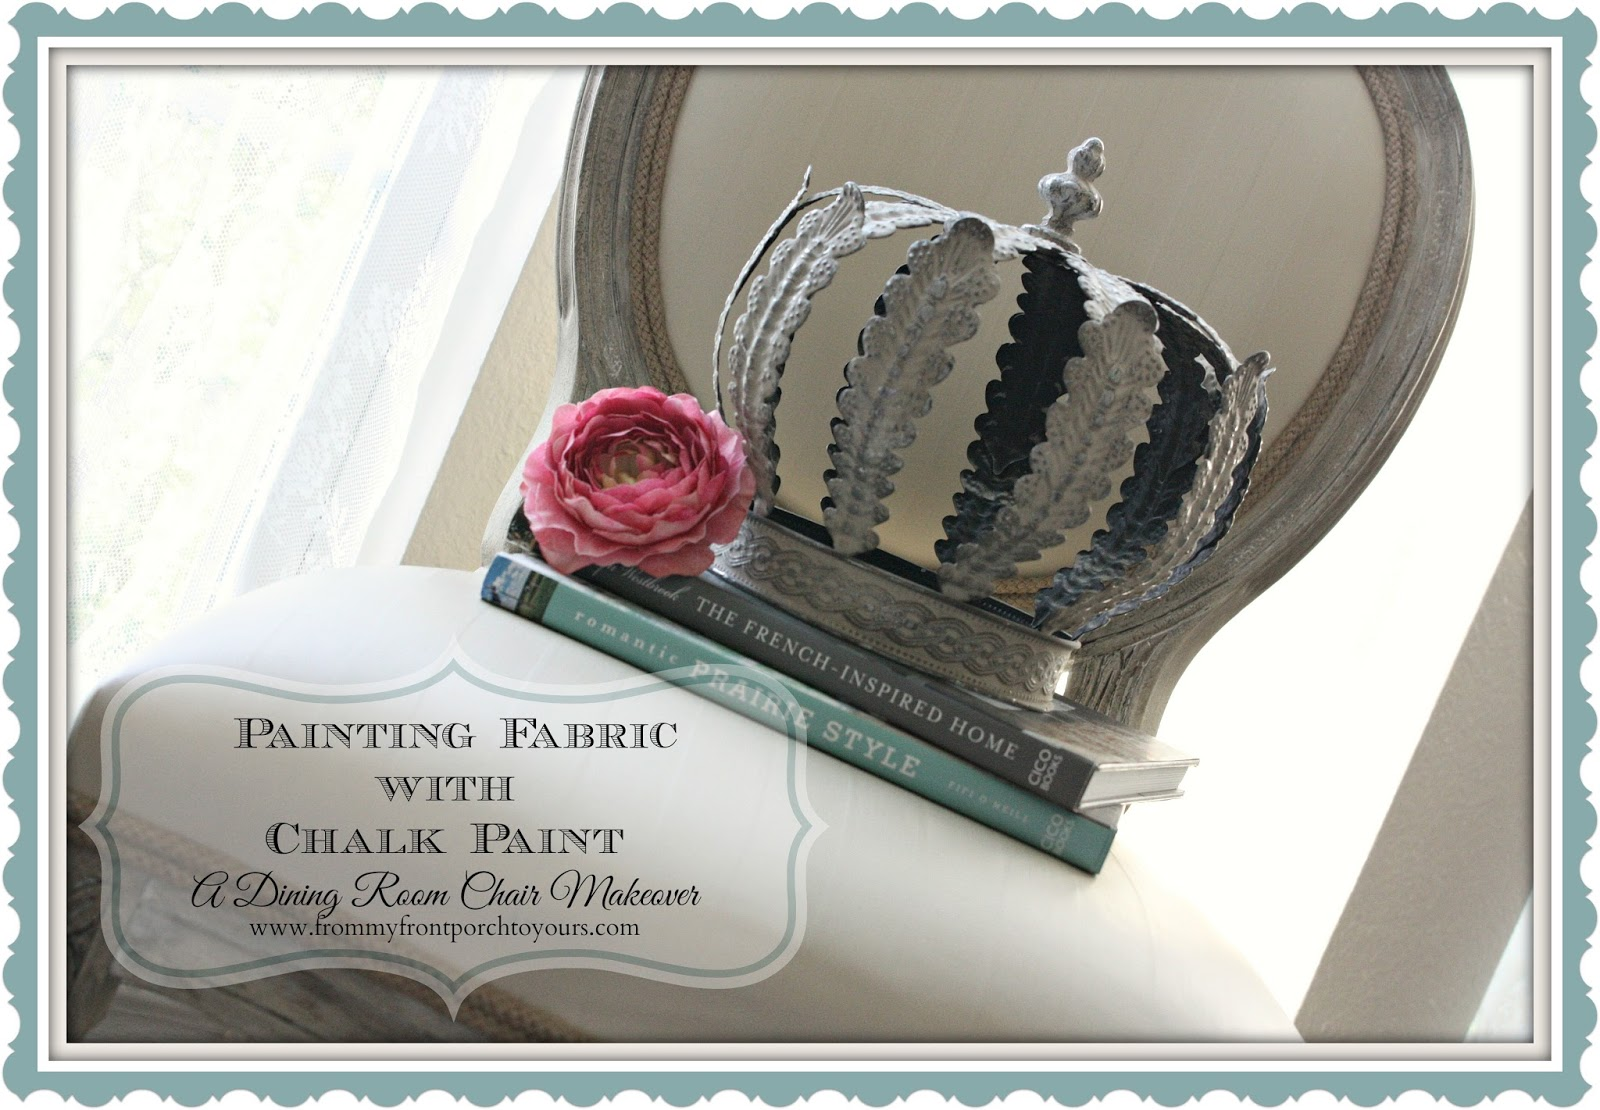 Painting Fabric with Chalk Paint-Top Blog Posts of 2014- From My Front Porch To Yours